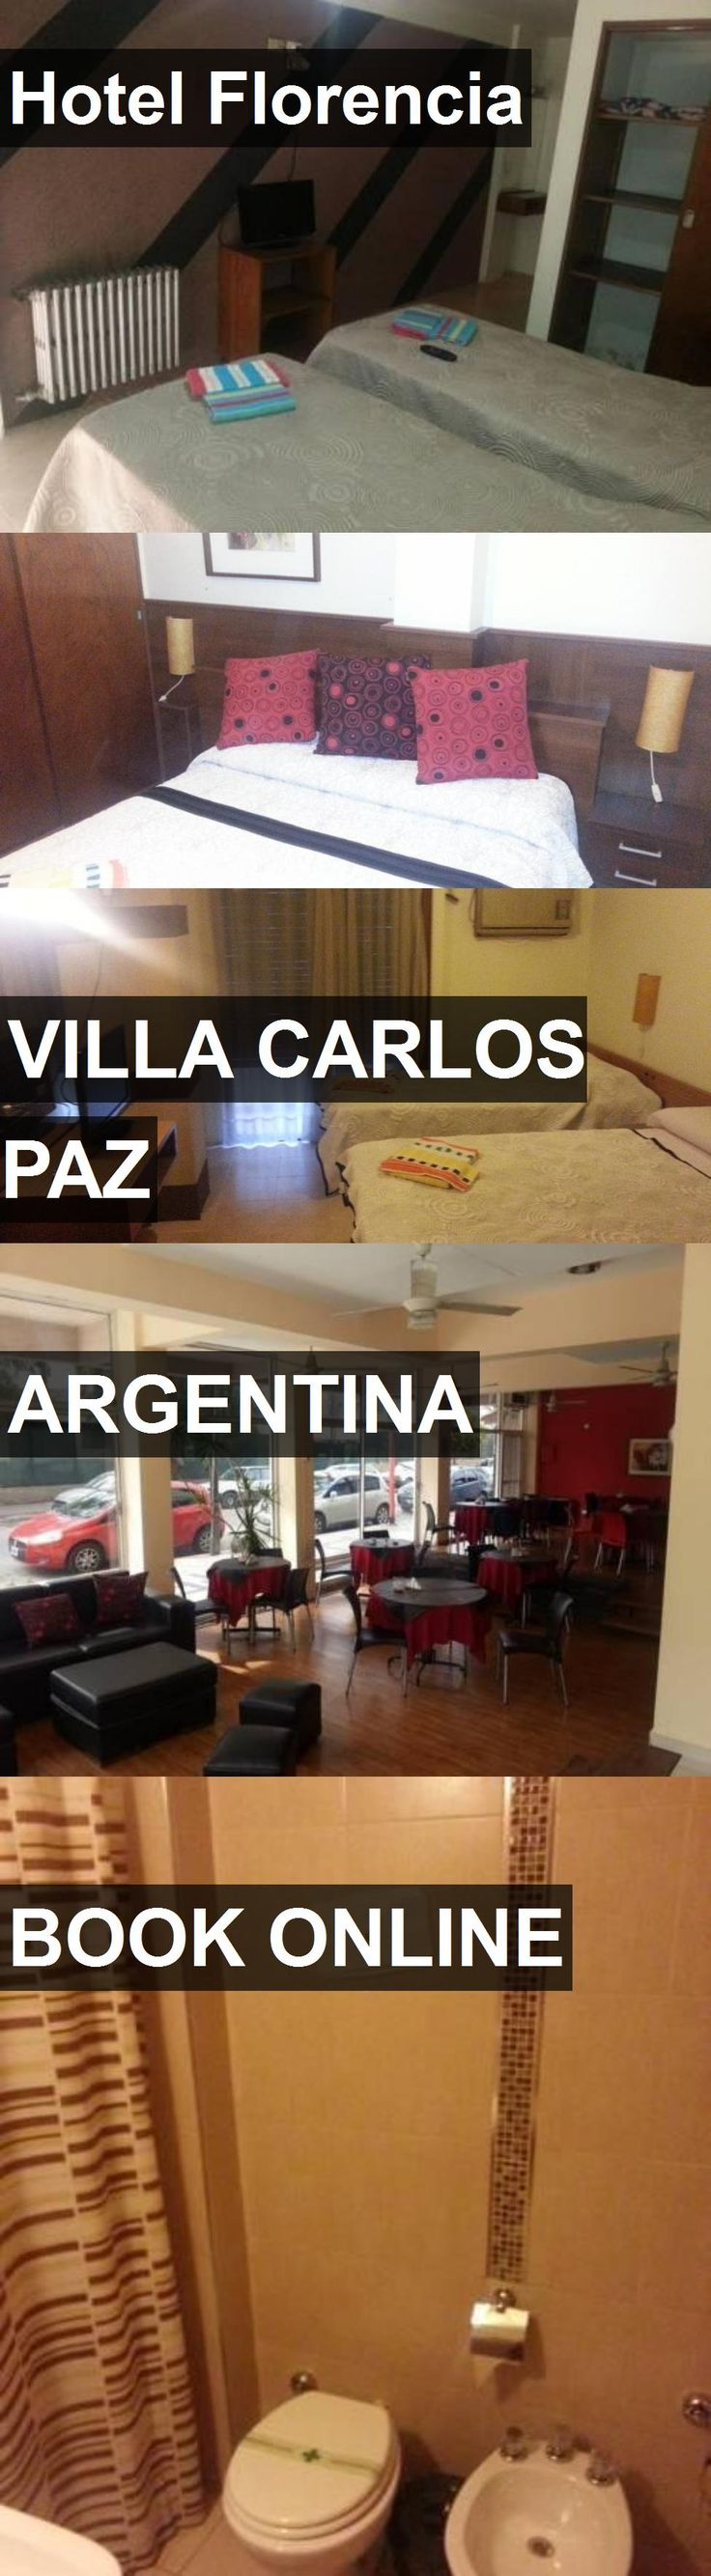 Hotel Florencia in Villa Carlos Paz, Argentina. For more information, photos, reviews and best prices please follow the link. #Argentina #VillaCarlosPaz #travel #vacation #hotel